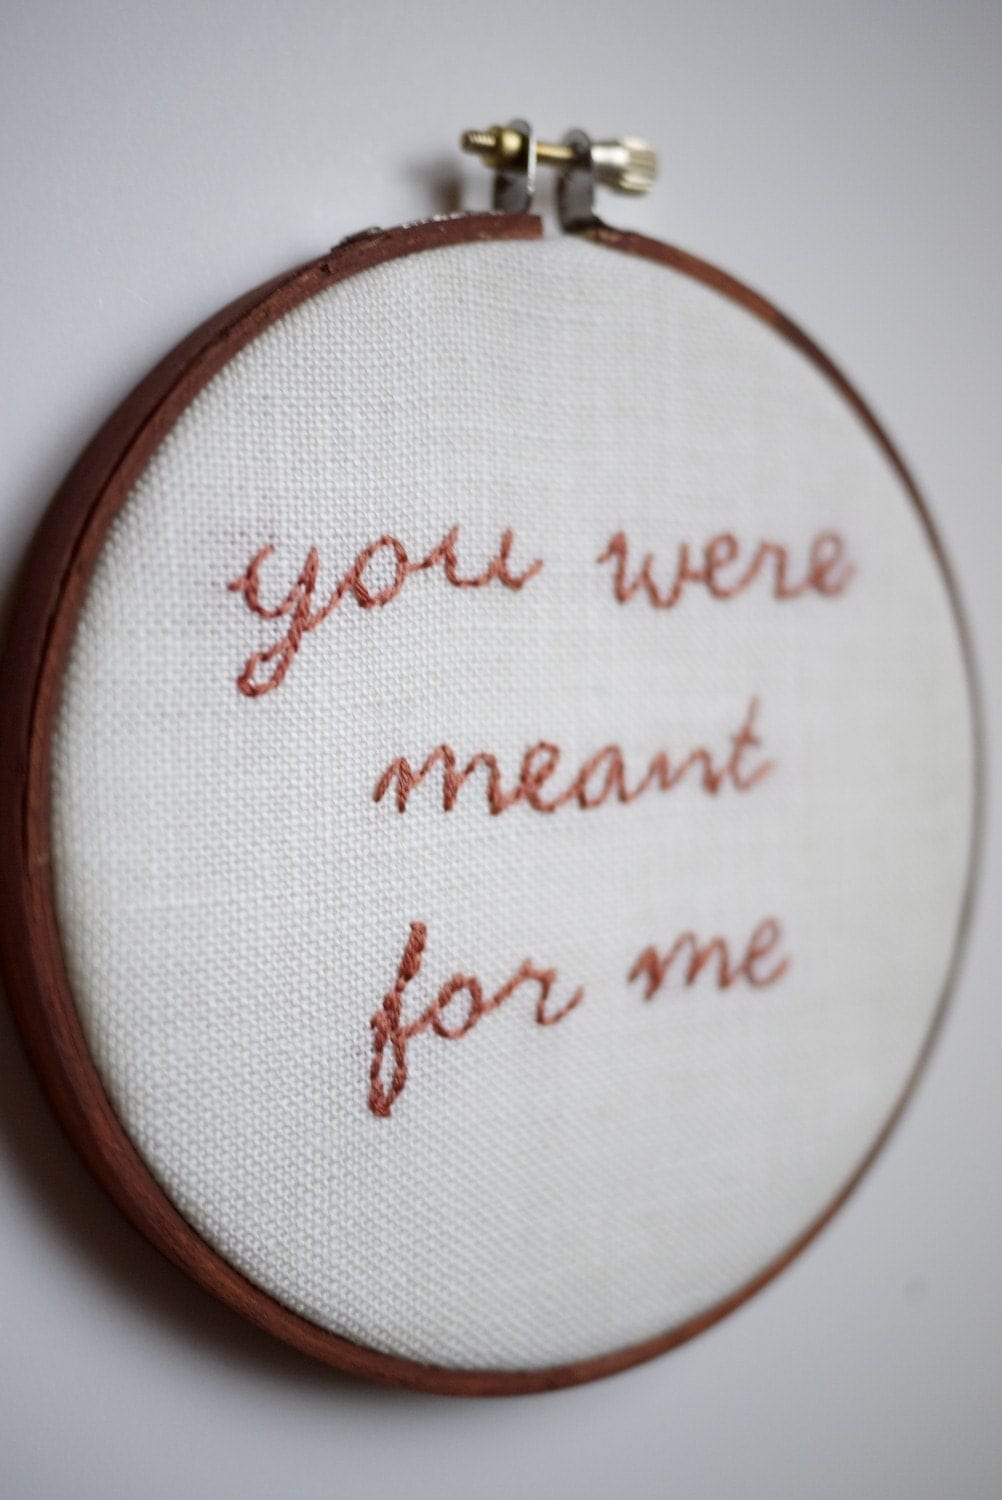 You were meant for me embroidery hoop wall hanging